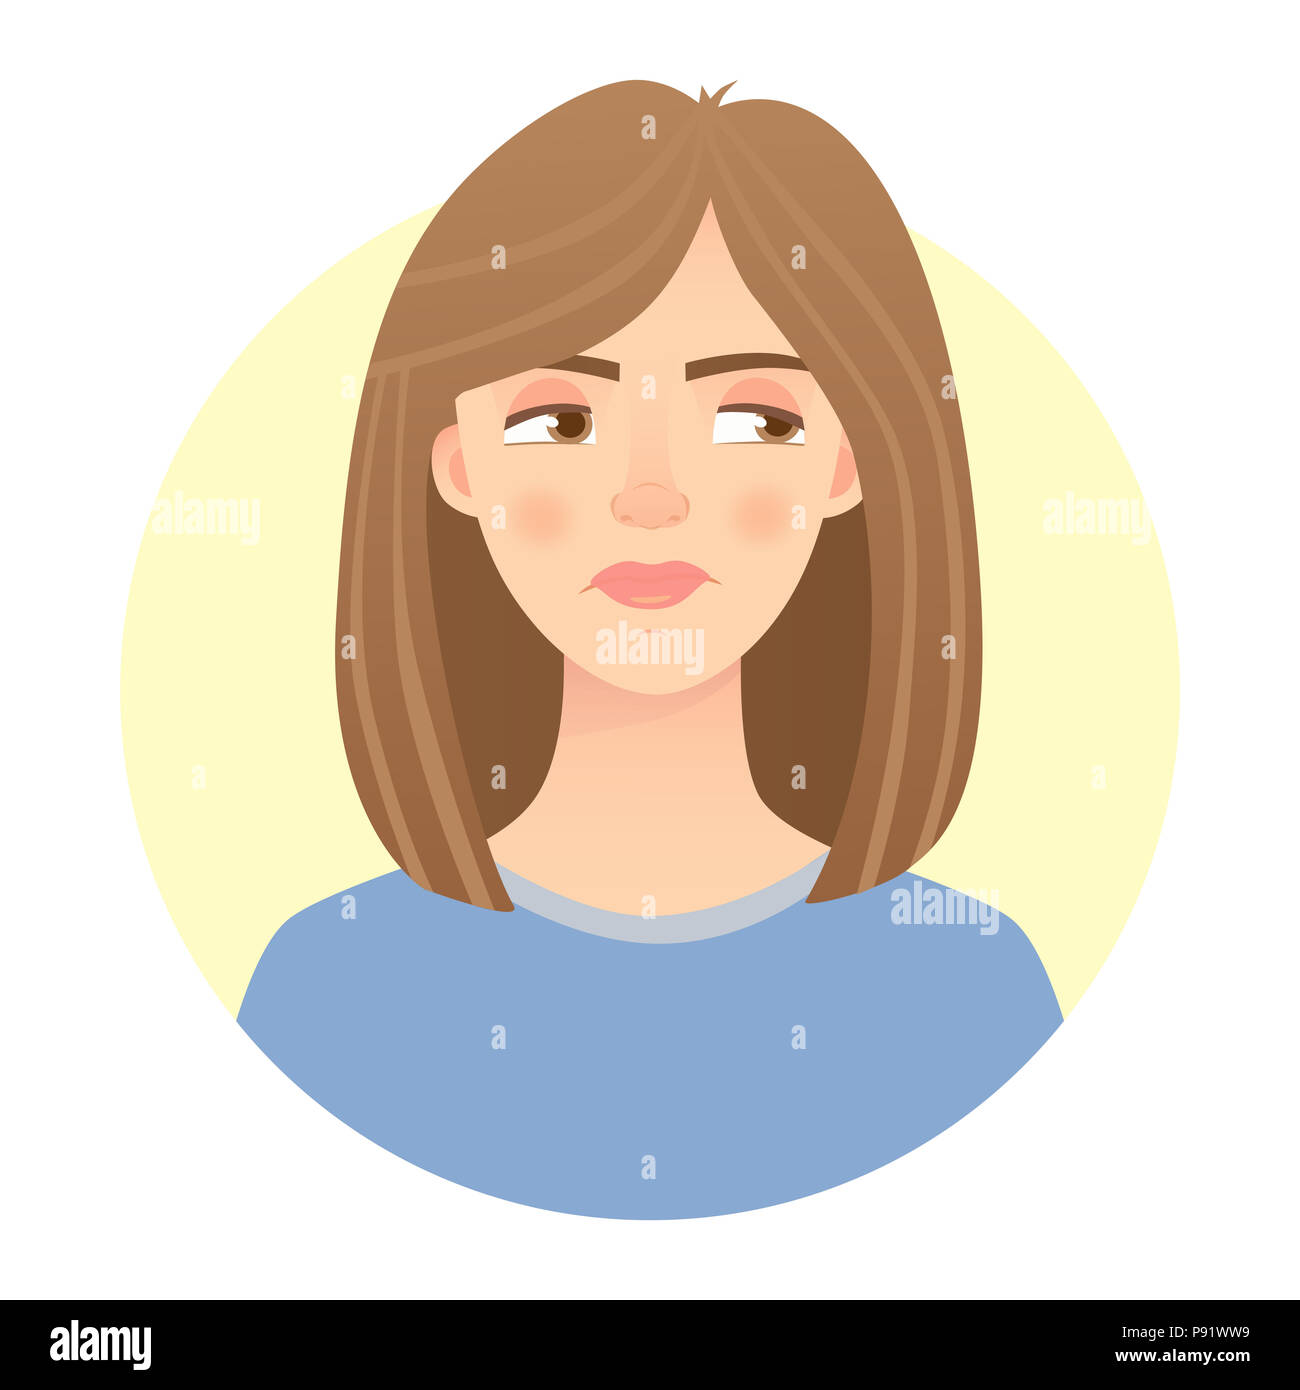 Emotions of woman face. Facial expression. Illustration of beautiful woman - Stock Image